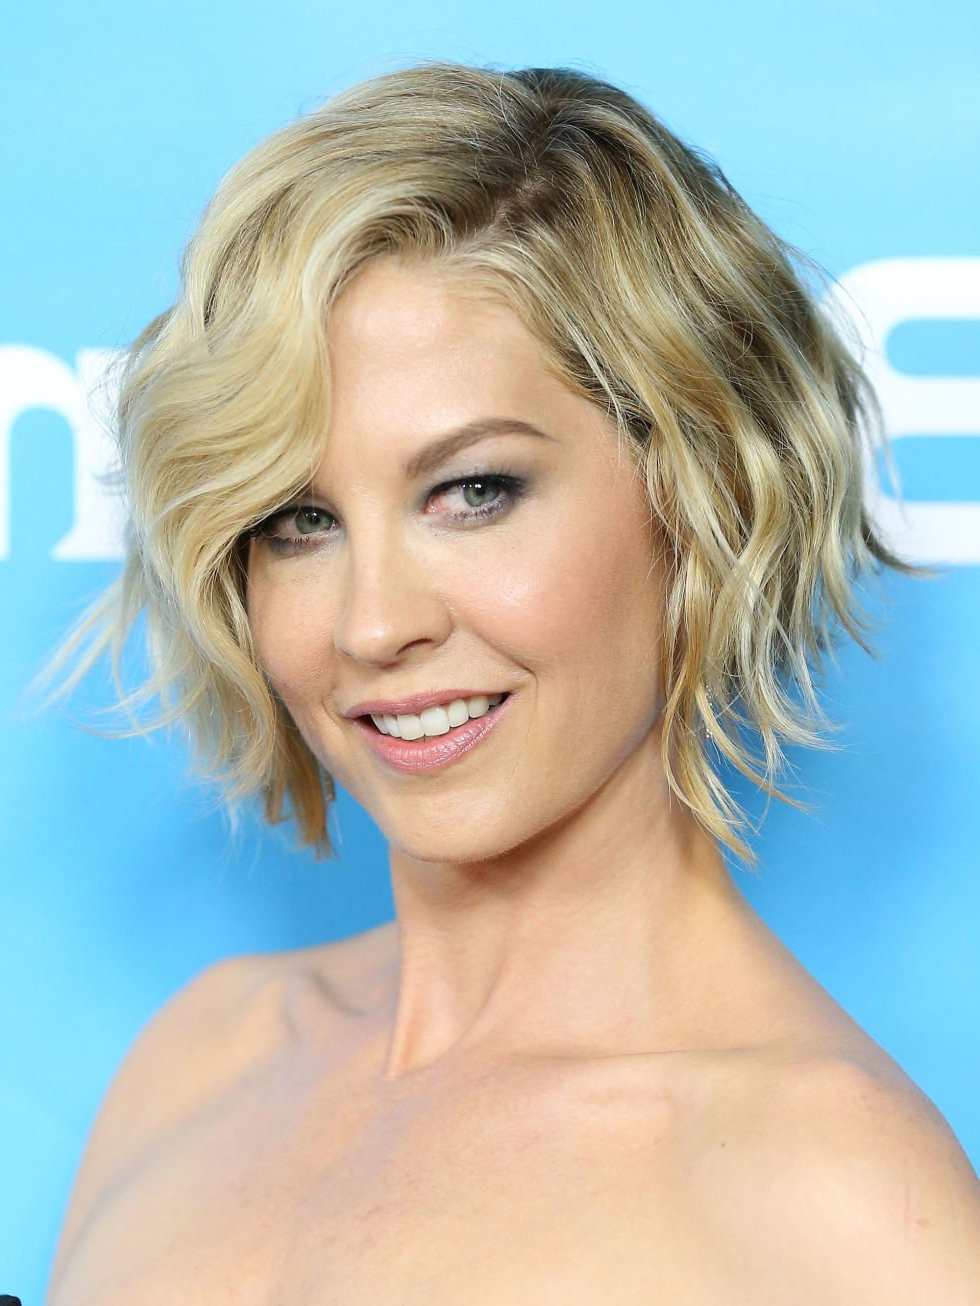 52 Short Hairstyles For Round, Oval And Square Faces Intended For Short Hairstyles For Chubby Cheeks (View 17 of 25)